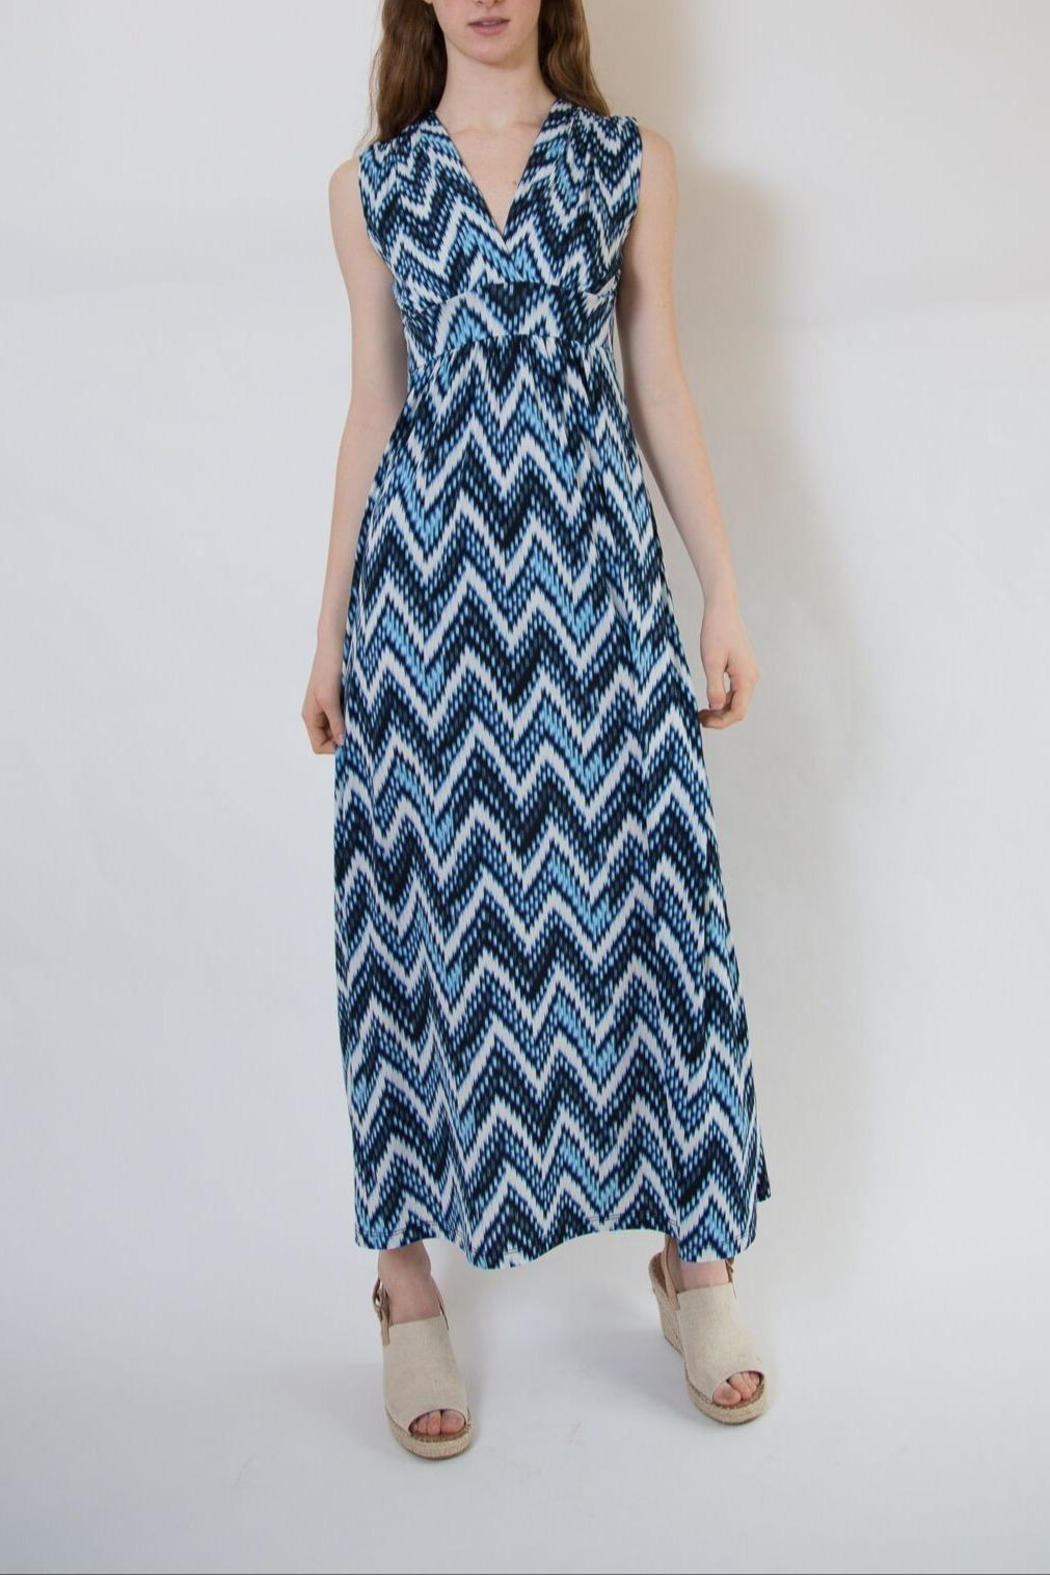 Veronica M Blue Multi Maxi Dress - Front Full Image